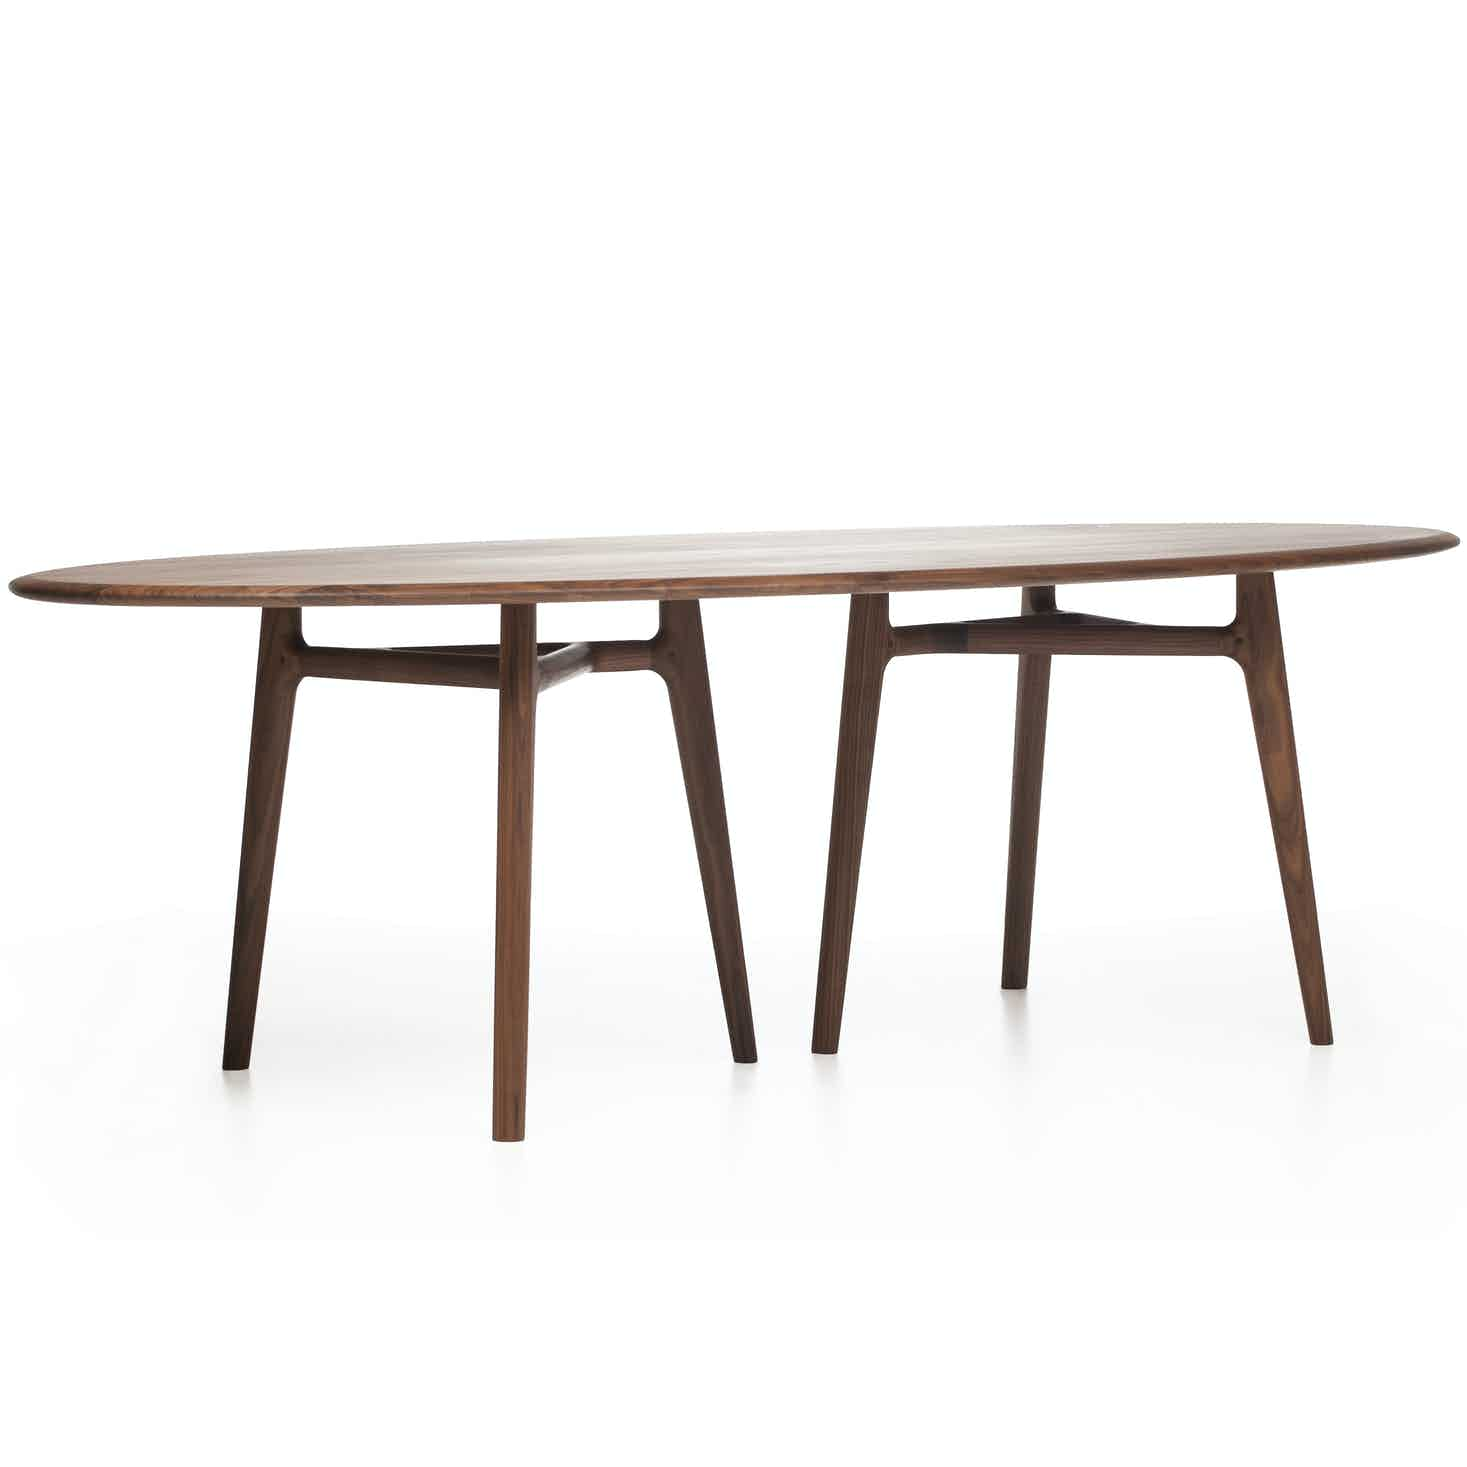 De La Espada Neri Hu Solo Dining Table Thumbnail Haute Living